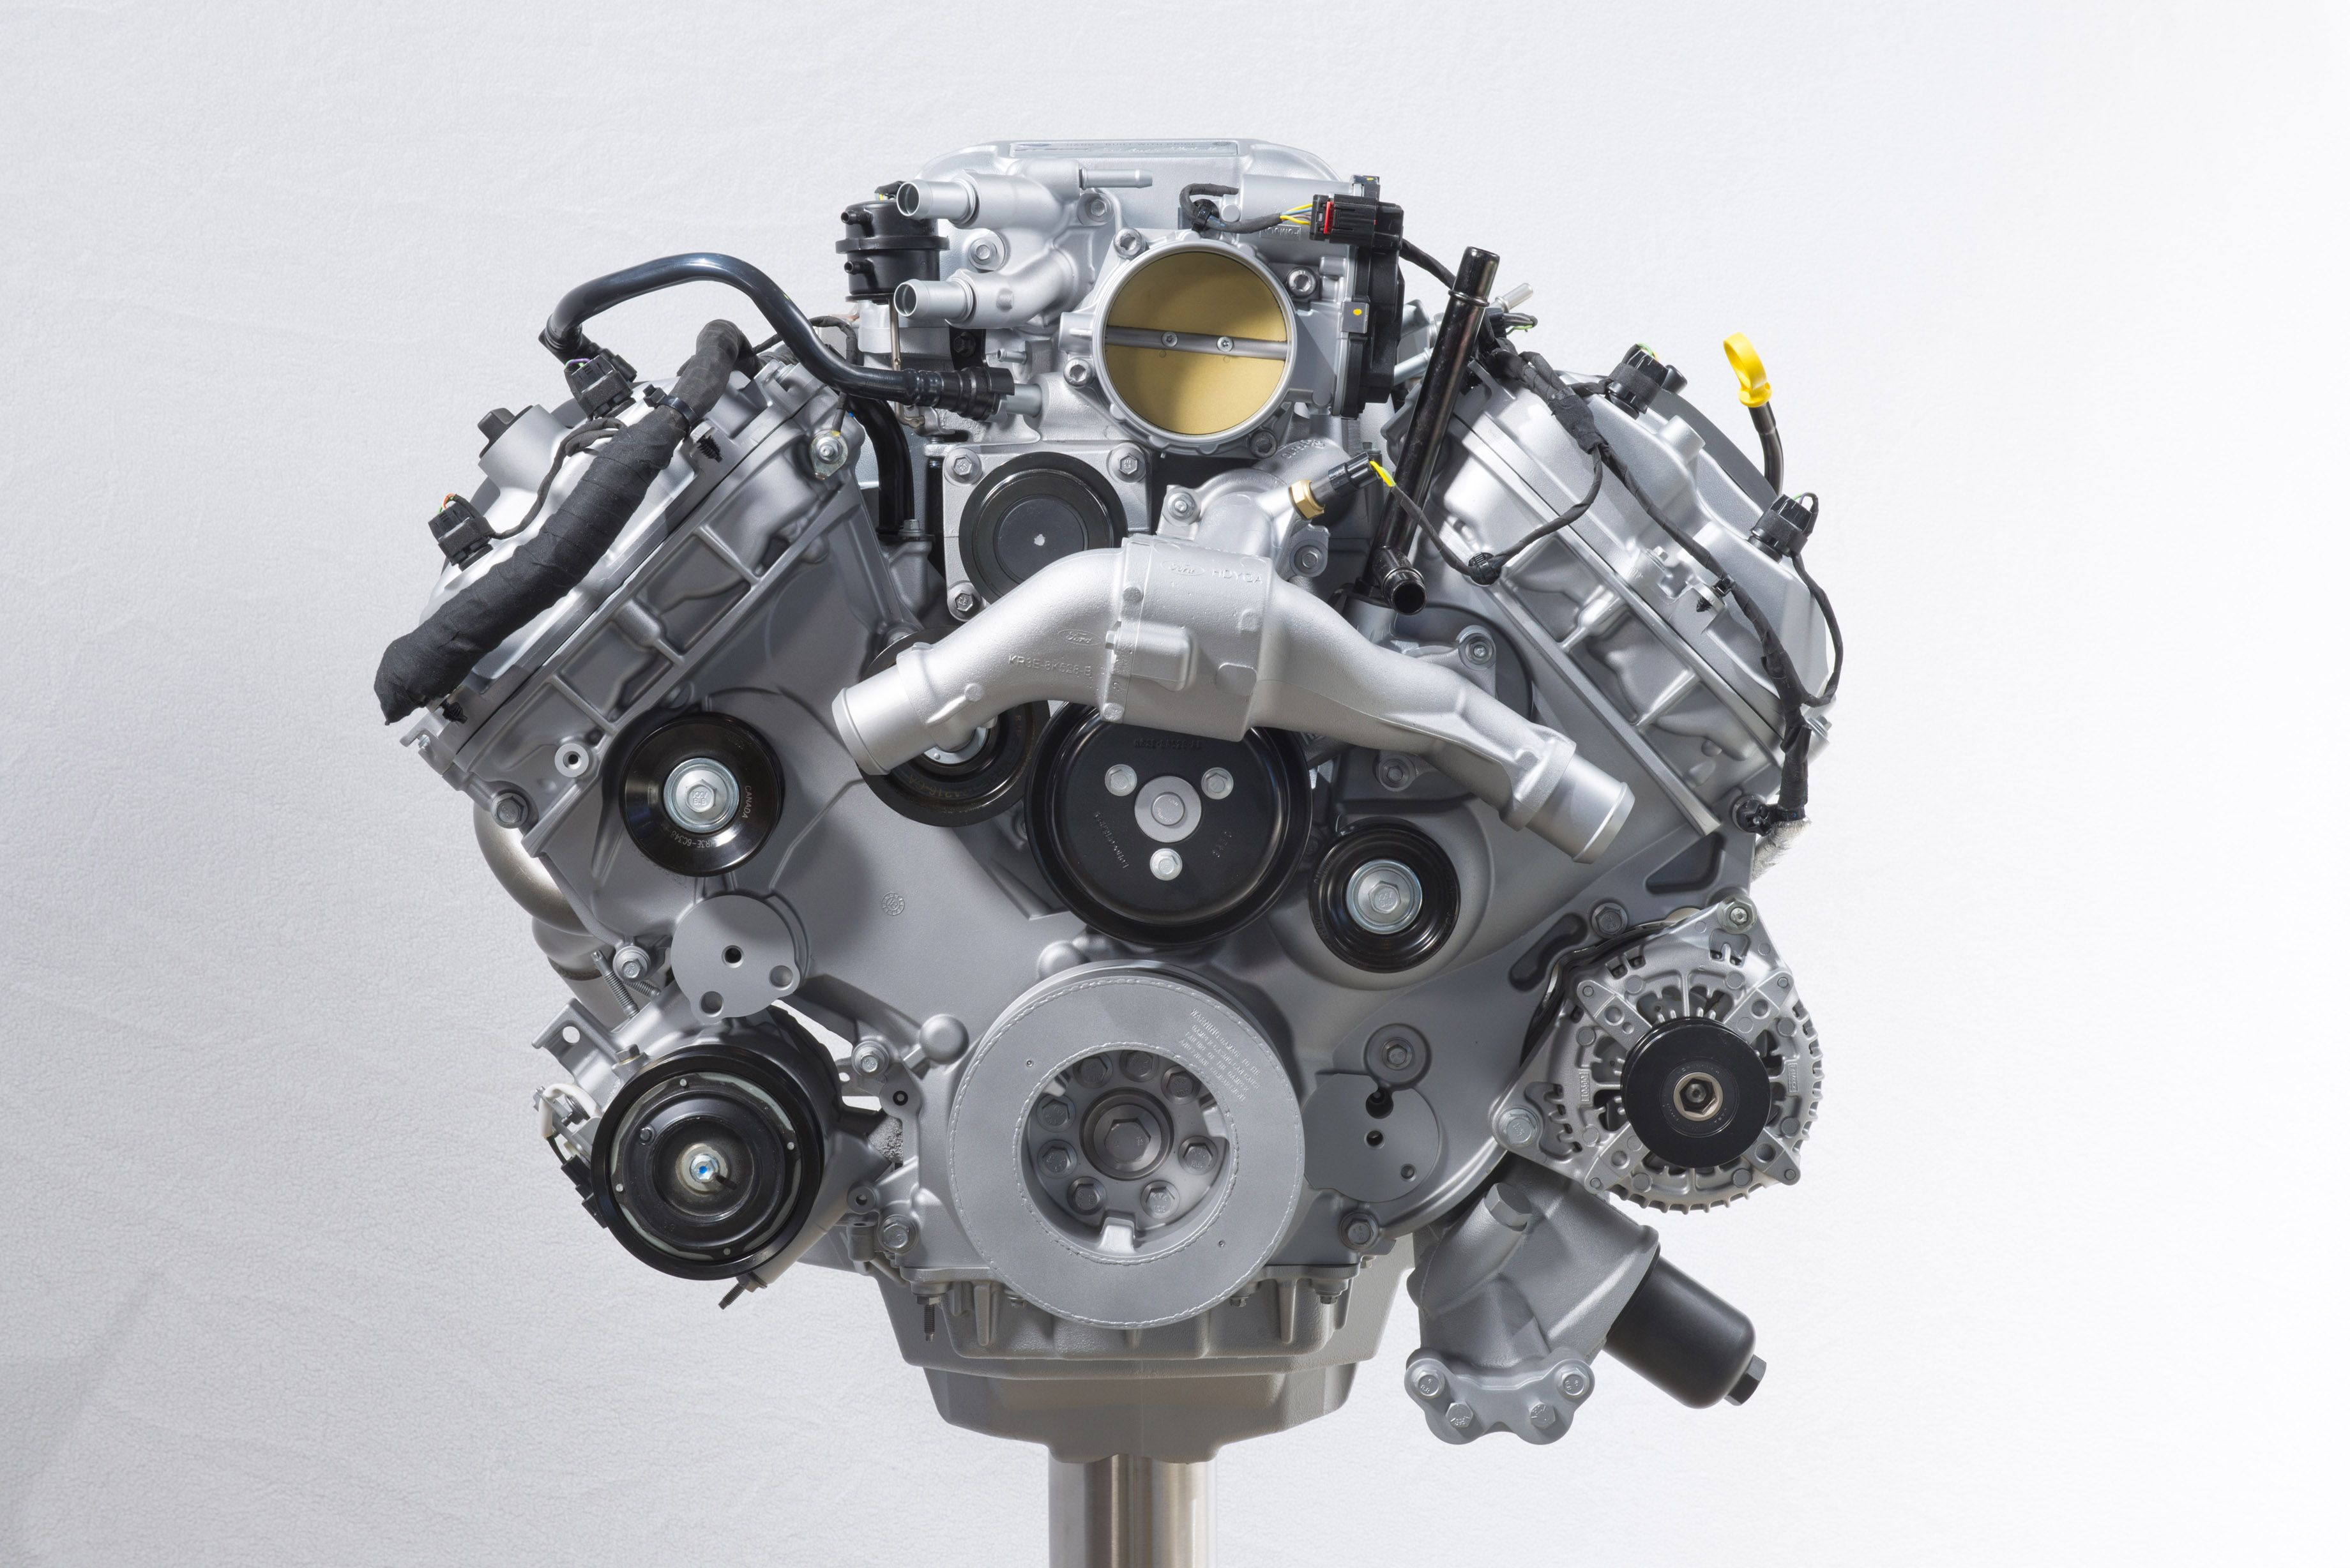 More Details About The Engine Of The 2020 Ford Shelby Gt500